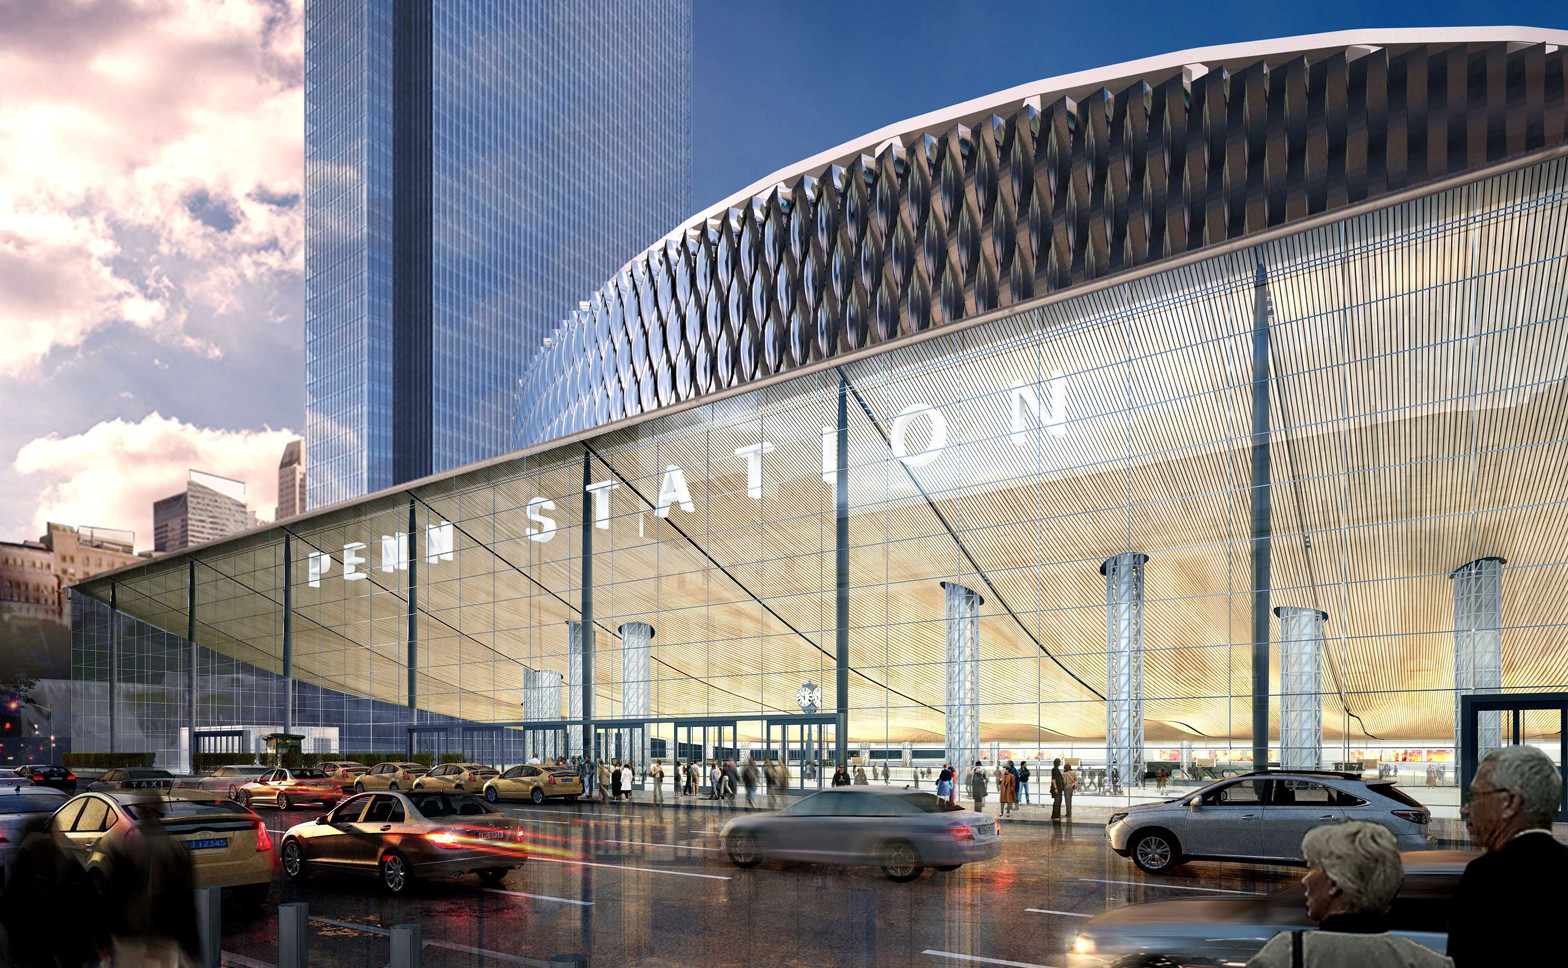 Penn-Station_Govenor-Andrew-Cuomo_Manhattan_New-York-City_USA_dezeen_1568_6